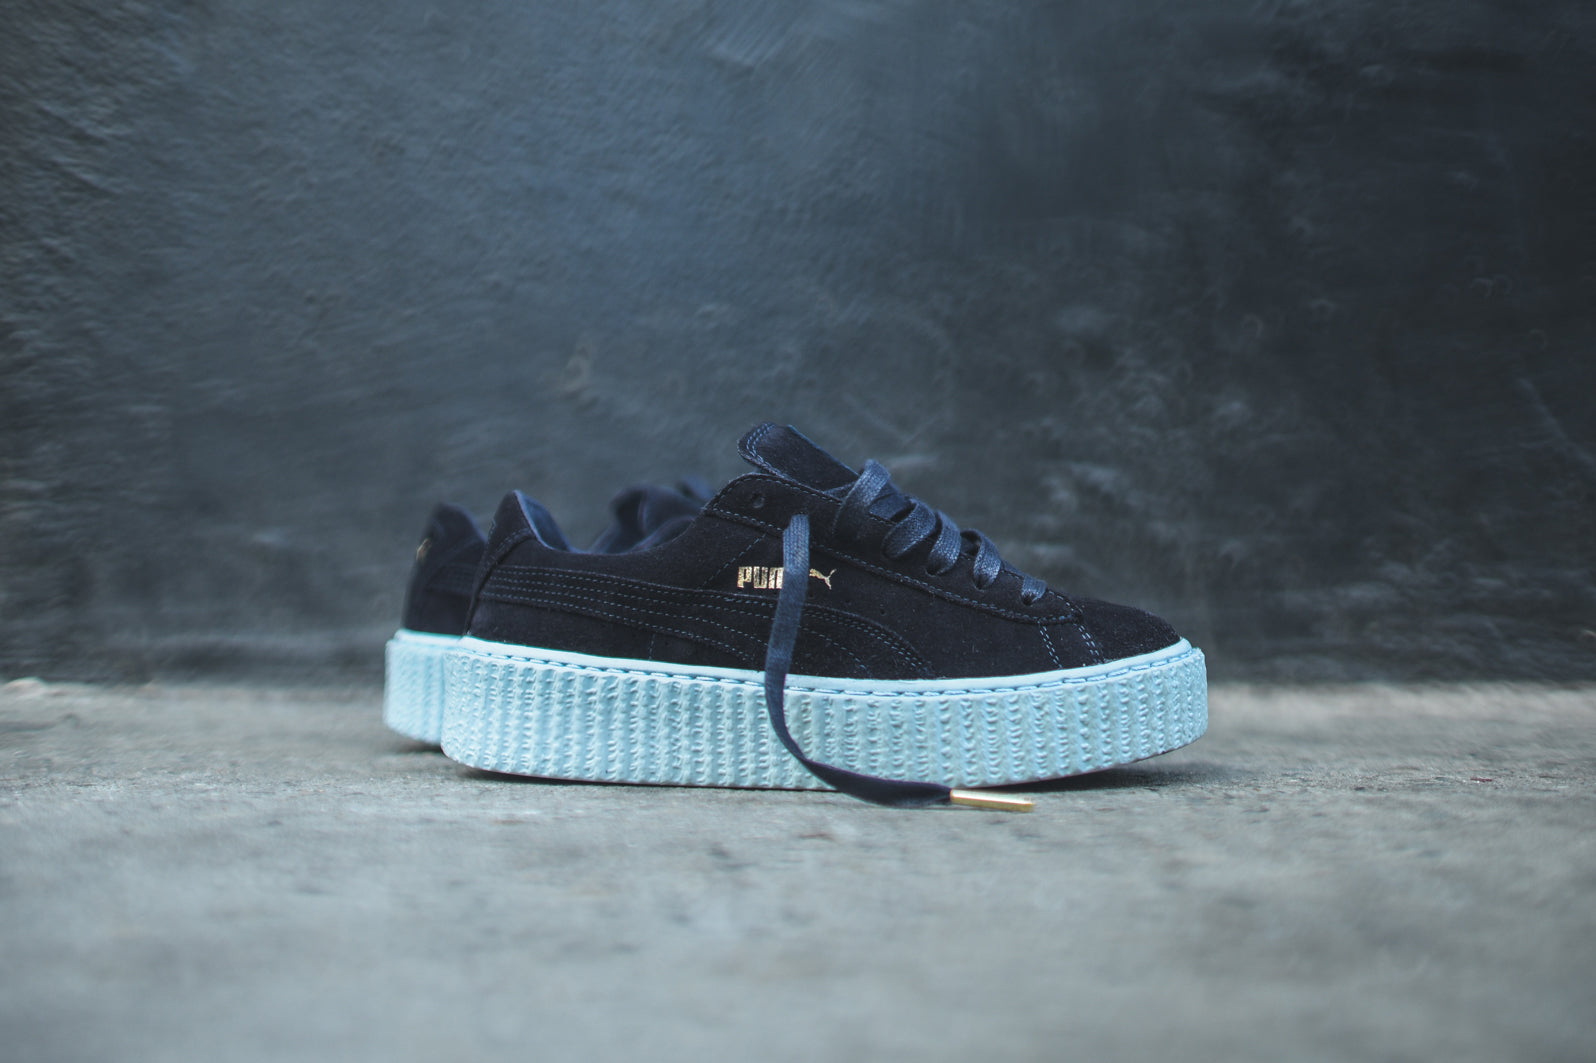 newest d256b 07cfc Puma x Rihanna WMNS Suede Creeper - Peacoat / Cool Blue – Kith